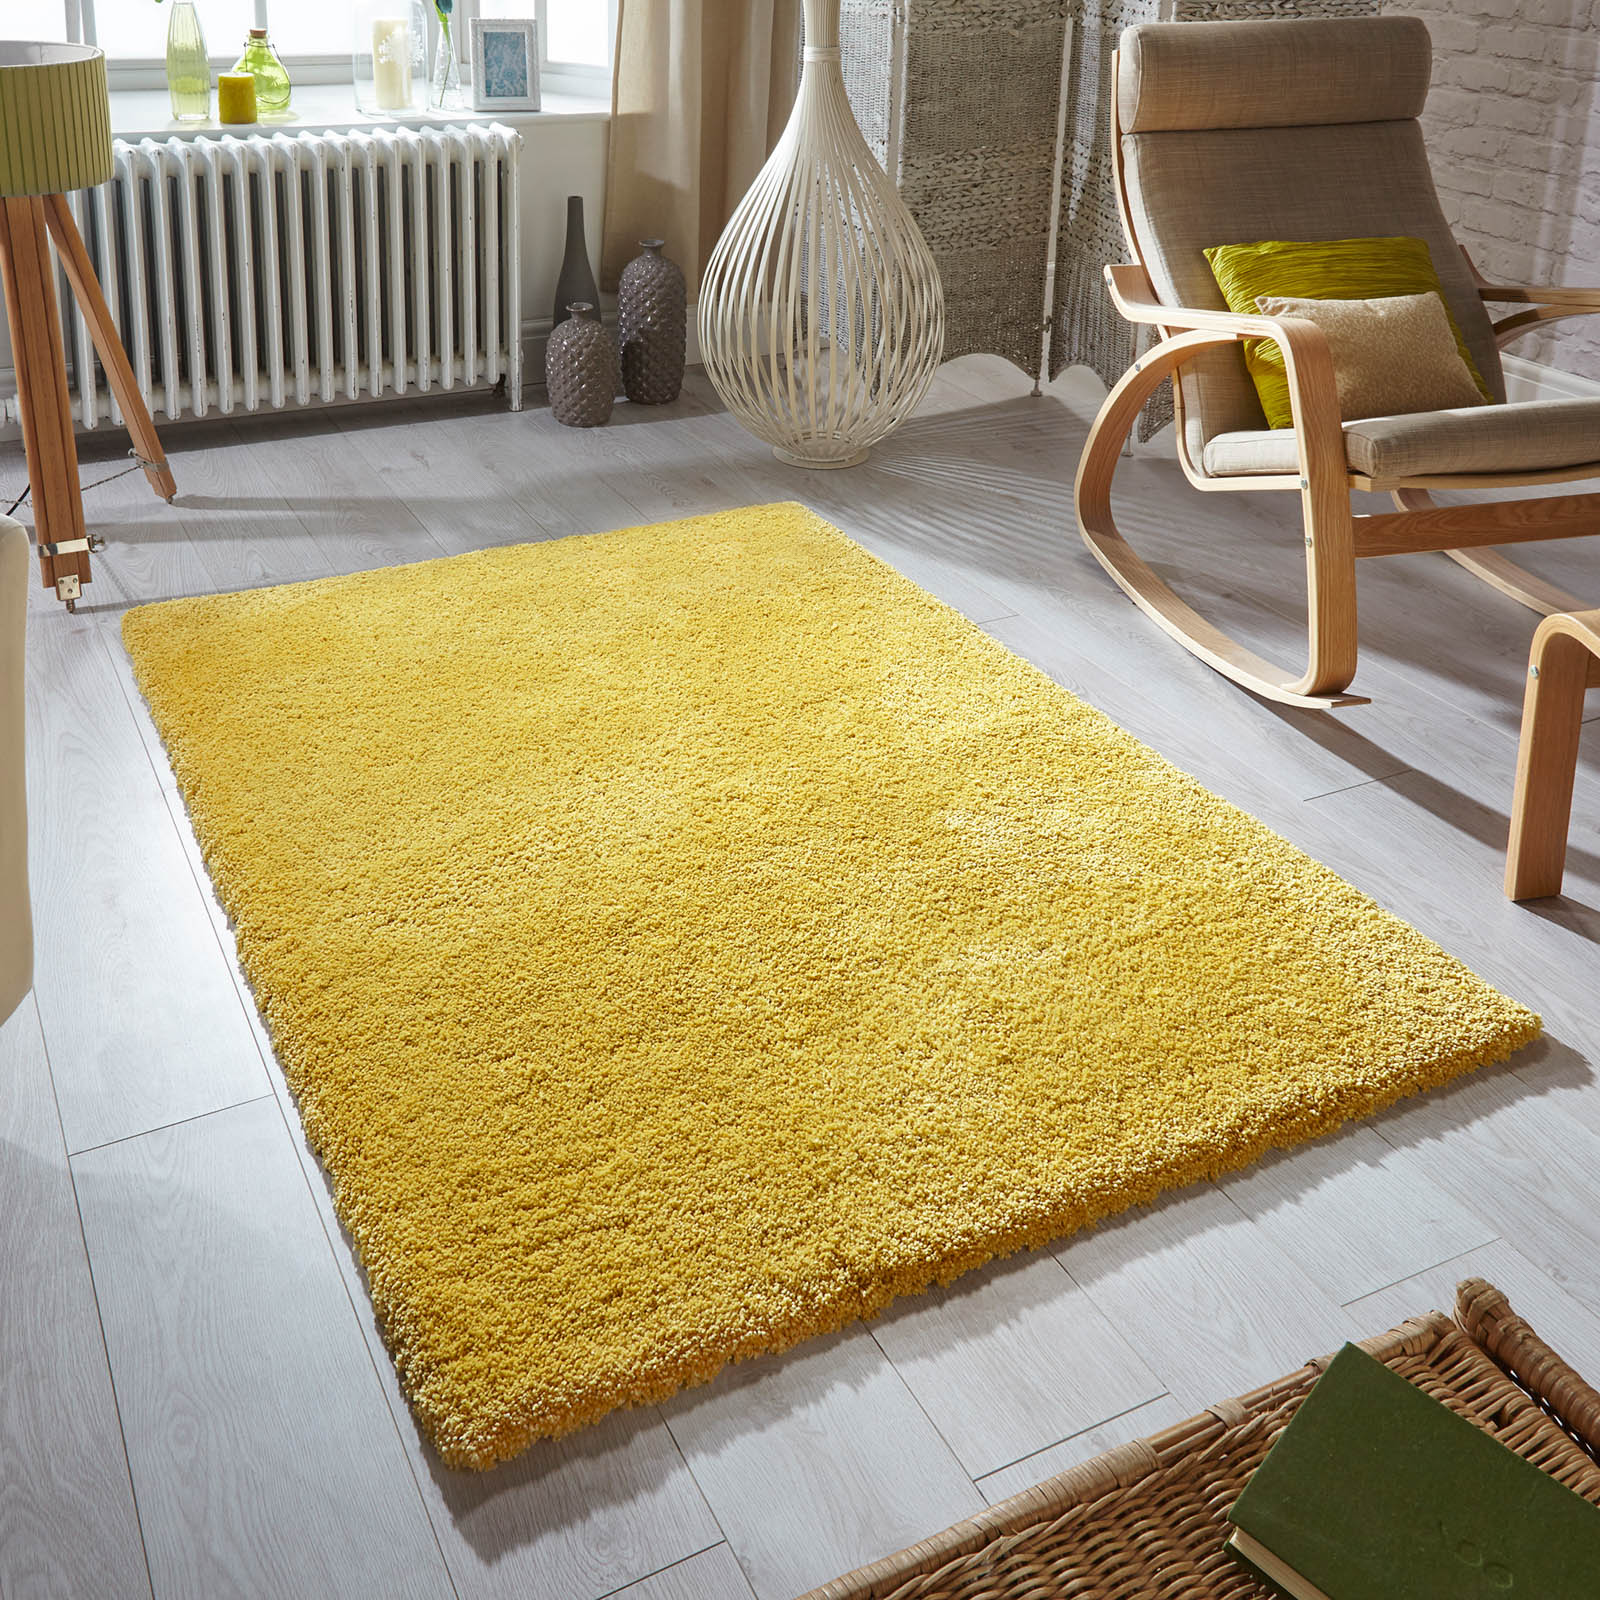 Softness Shaggy Rugs In Mustard